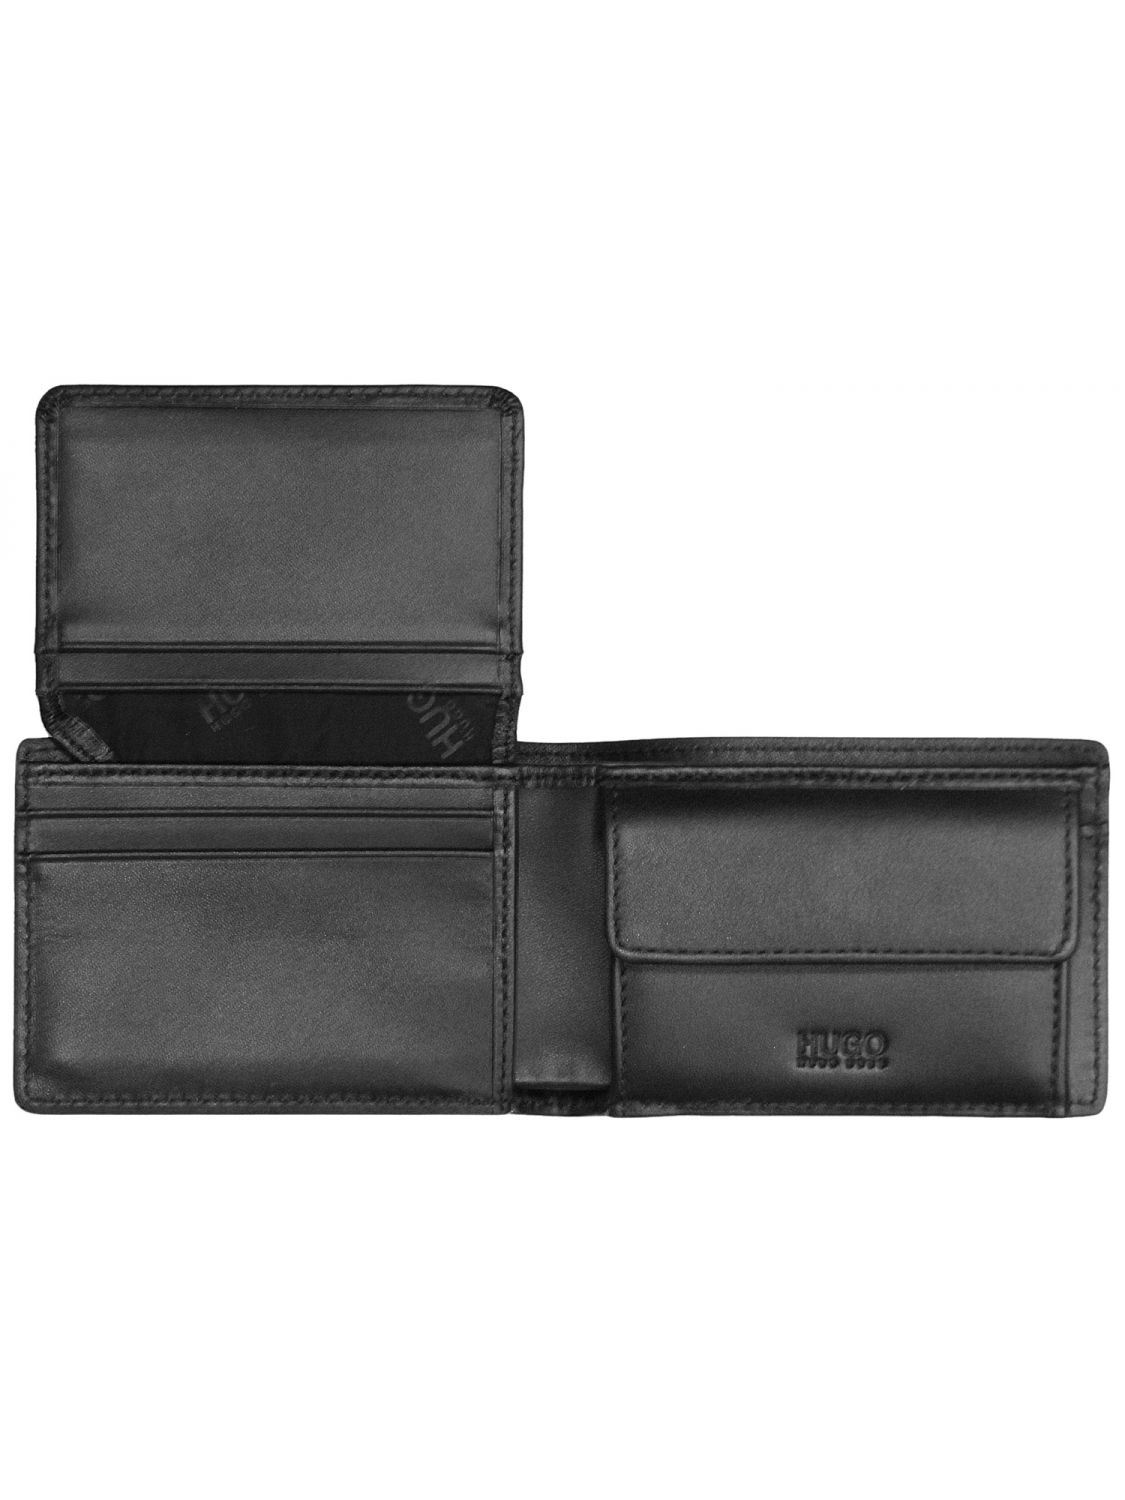 HUGO 50328622 Elements CC Mens Wallet Black • uhrcenter cb106a7dc8